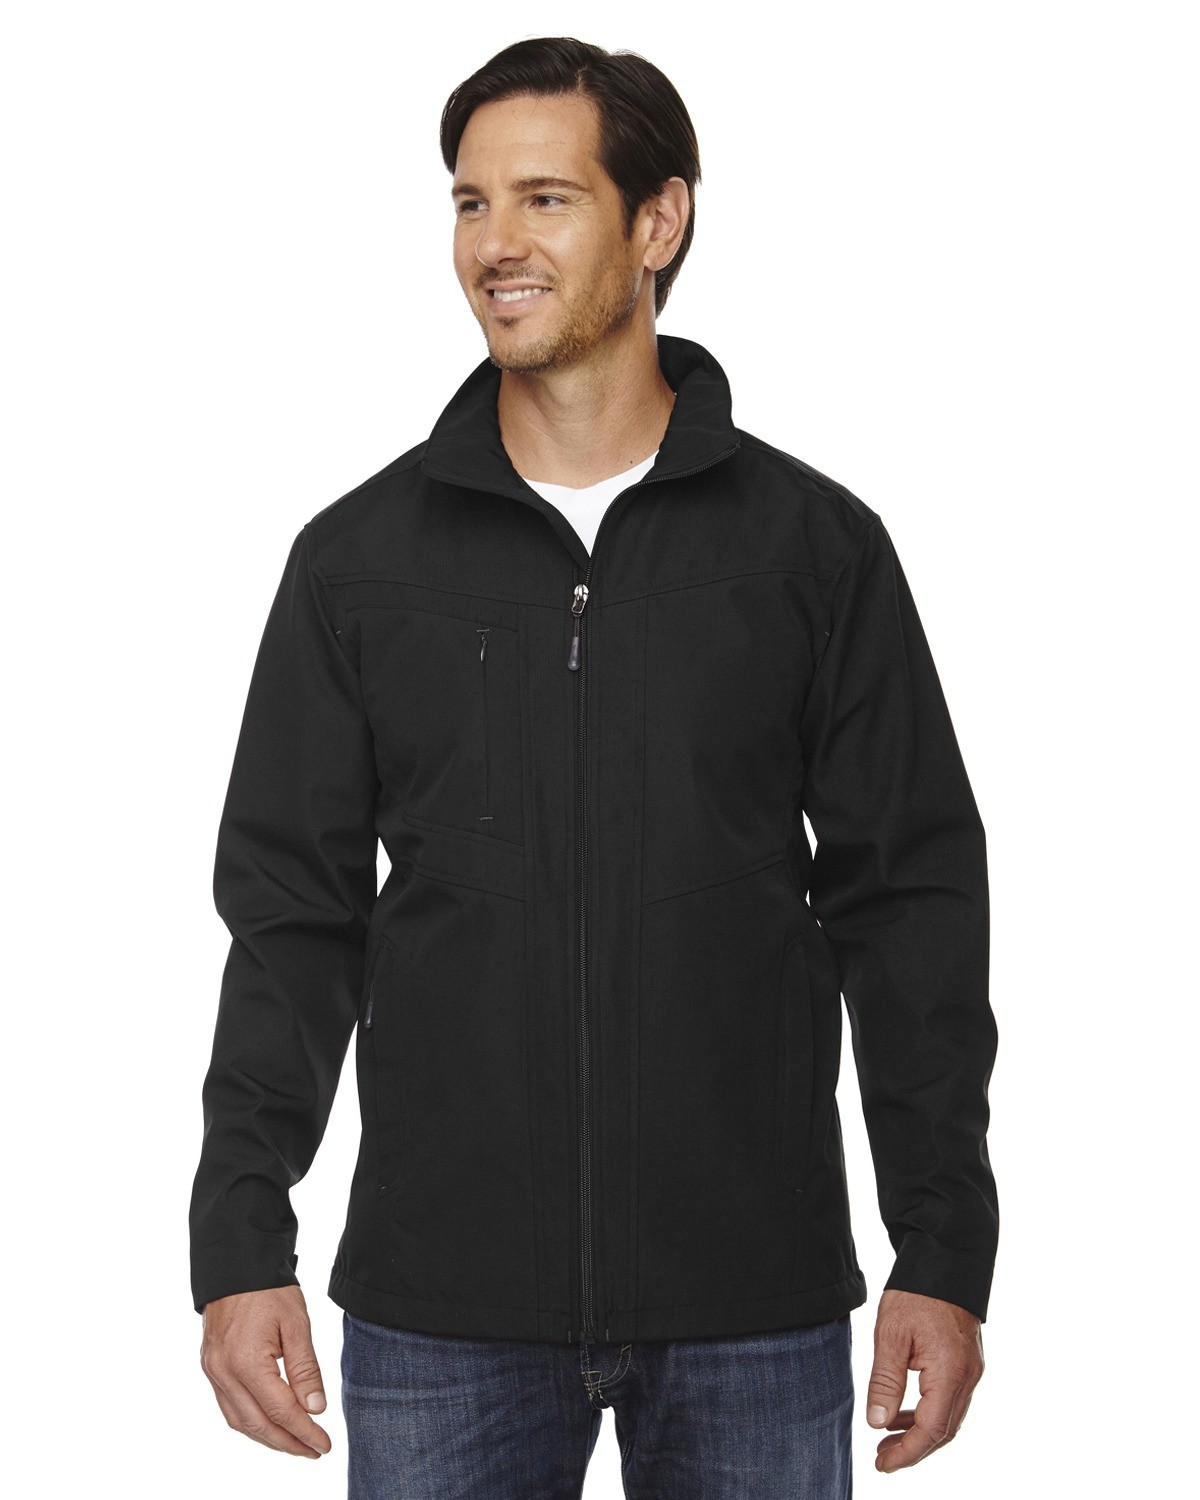 Men's Forecast Three-Layer Light Bonded Travel Soft Shell Jacket